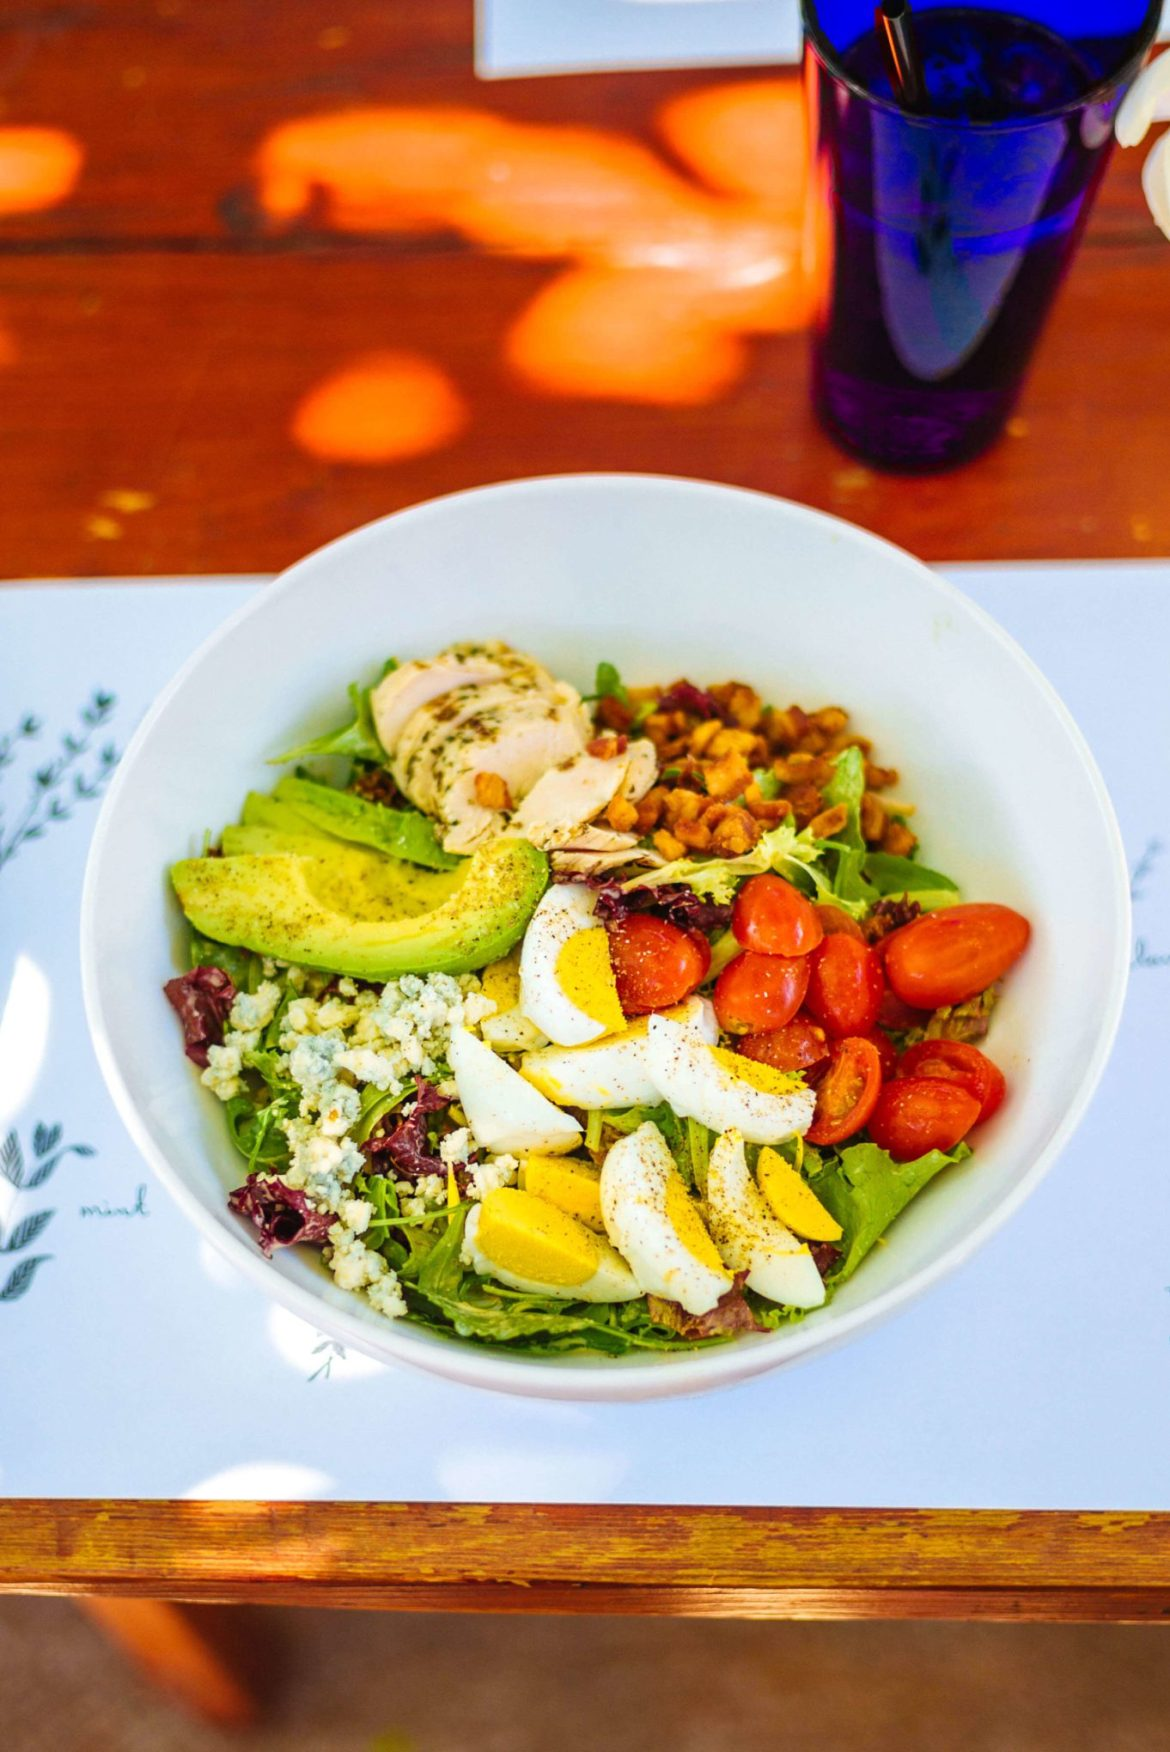 Visit the Barn Kitchen at Sparrows Lodge in Palm Springs for a delicious lunch under the orange trees and this perfect Cobb salad for lunch, thetasteedit #hotel #salad #palmsprings #travel